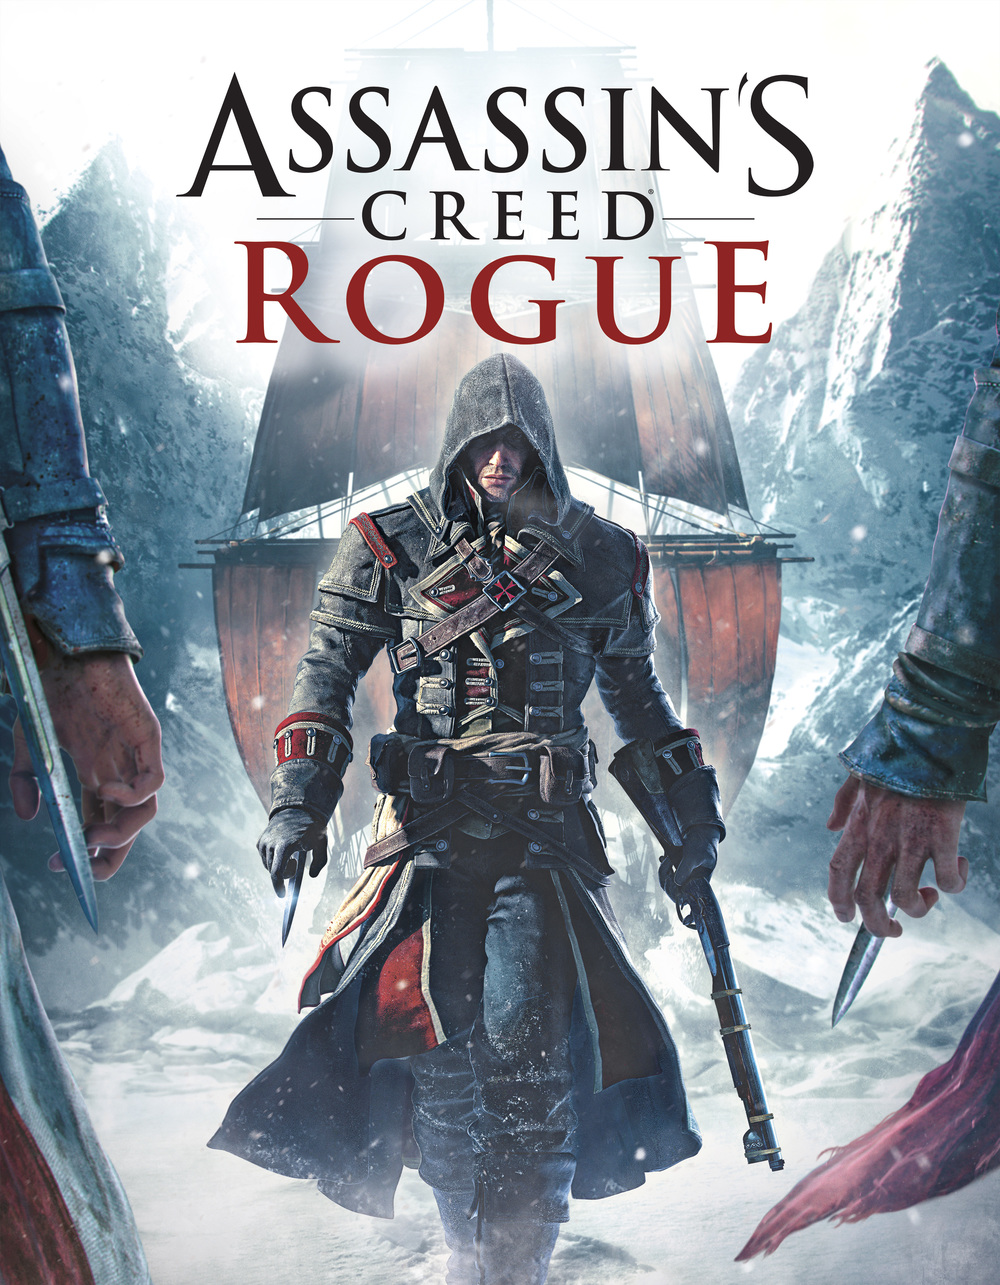 Assassins_Creed_Rogue_KEYART.JPG